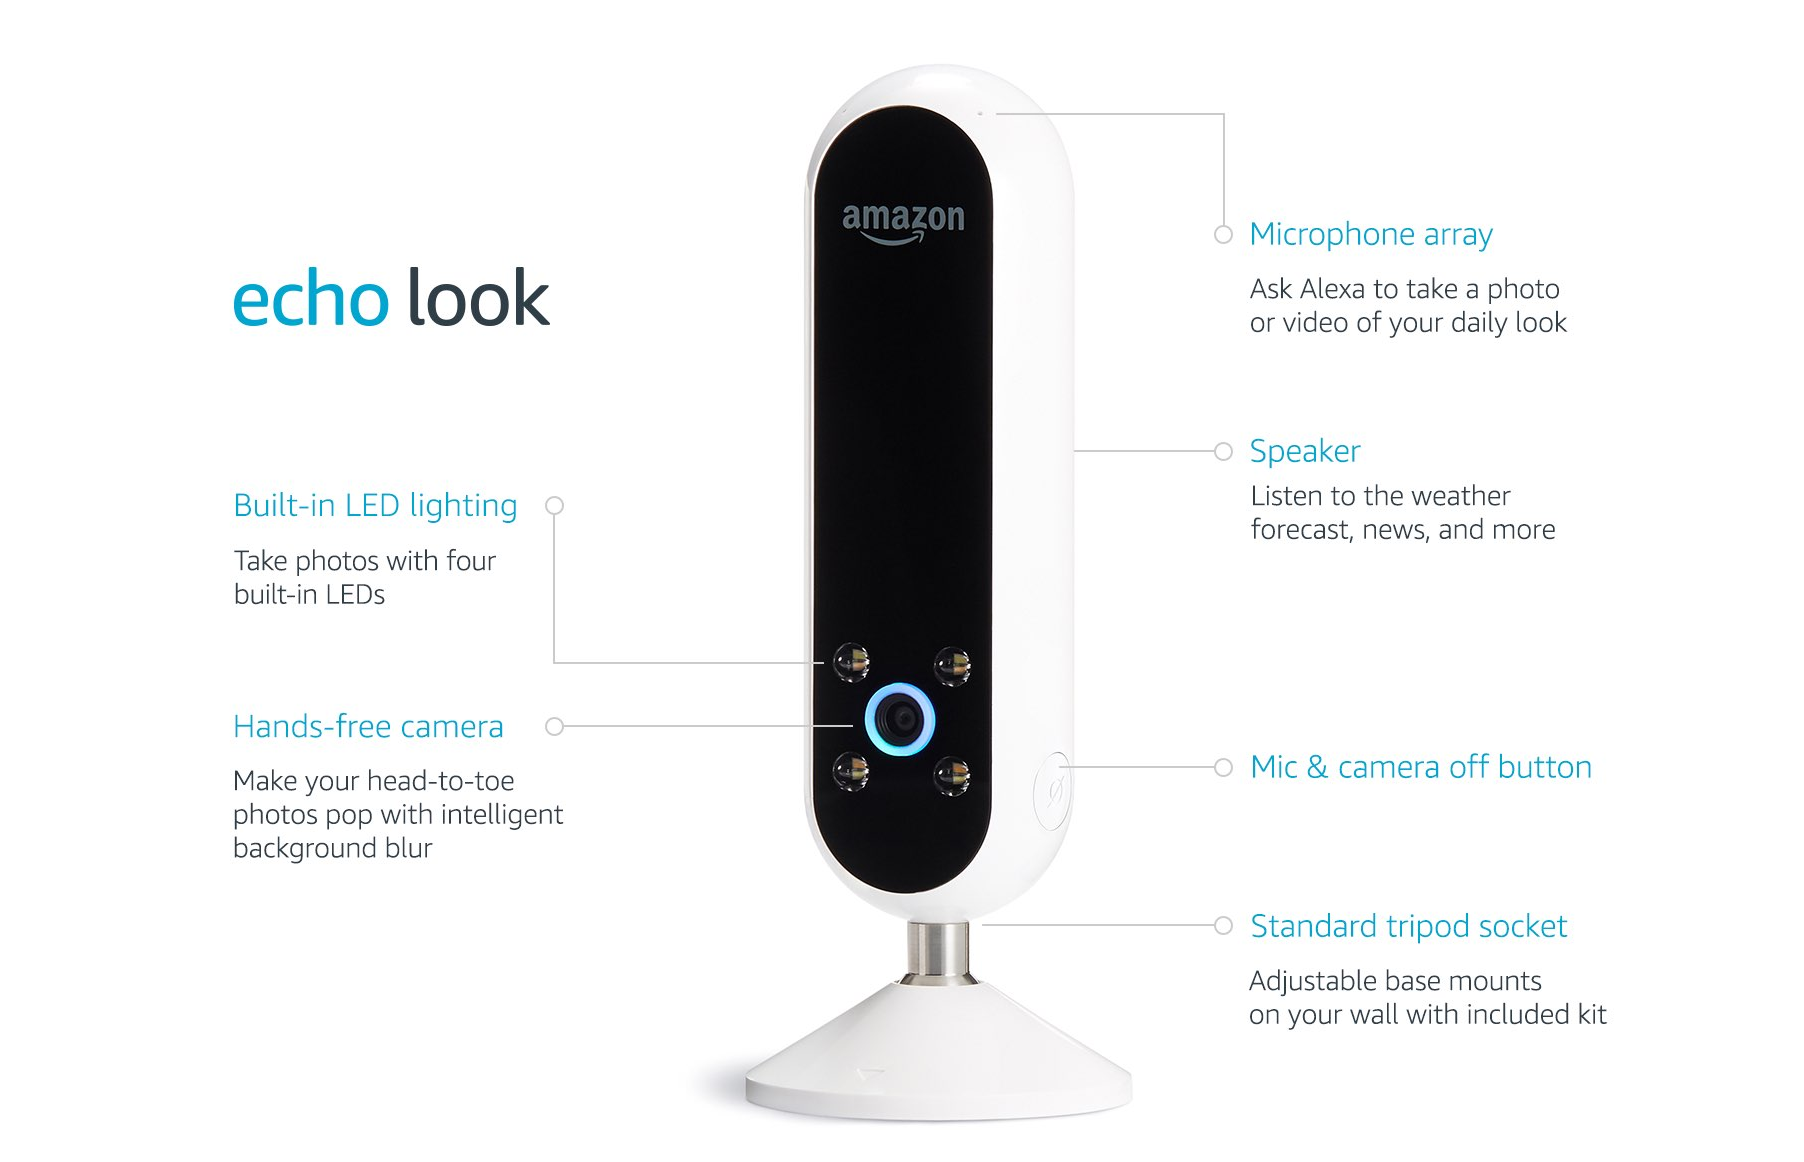 Amazon Echo Look - Amazon unveils Echo Look that can see what you're wearing and judge your outfit!